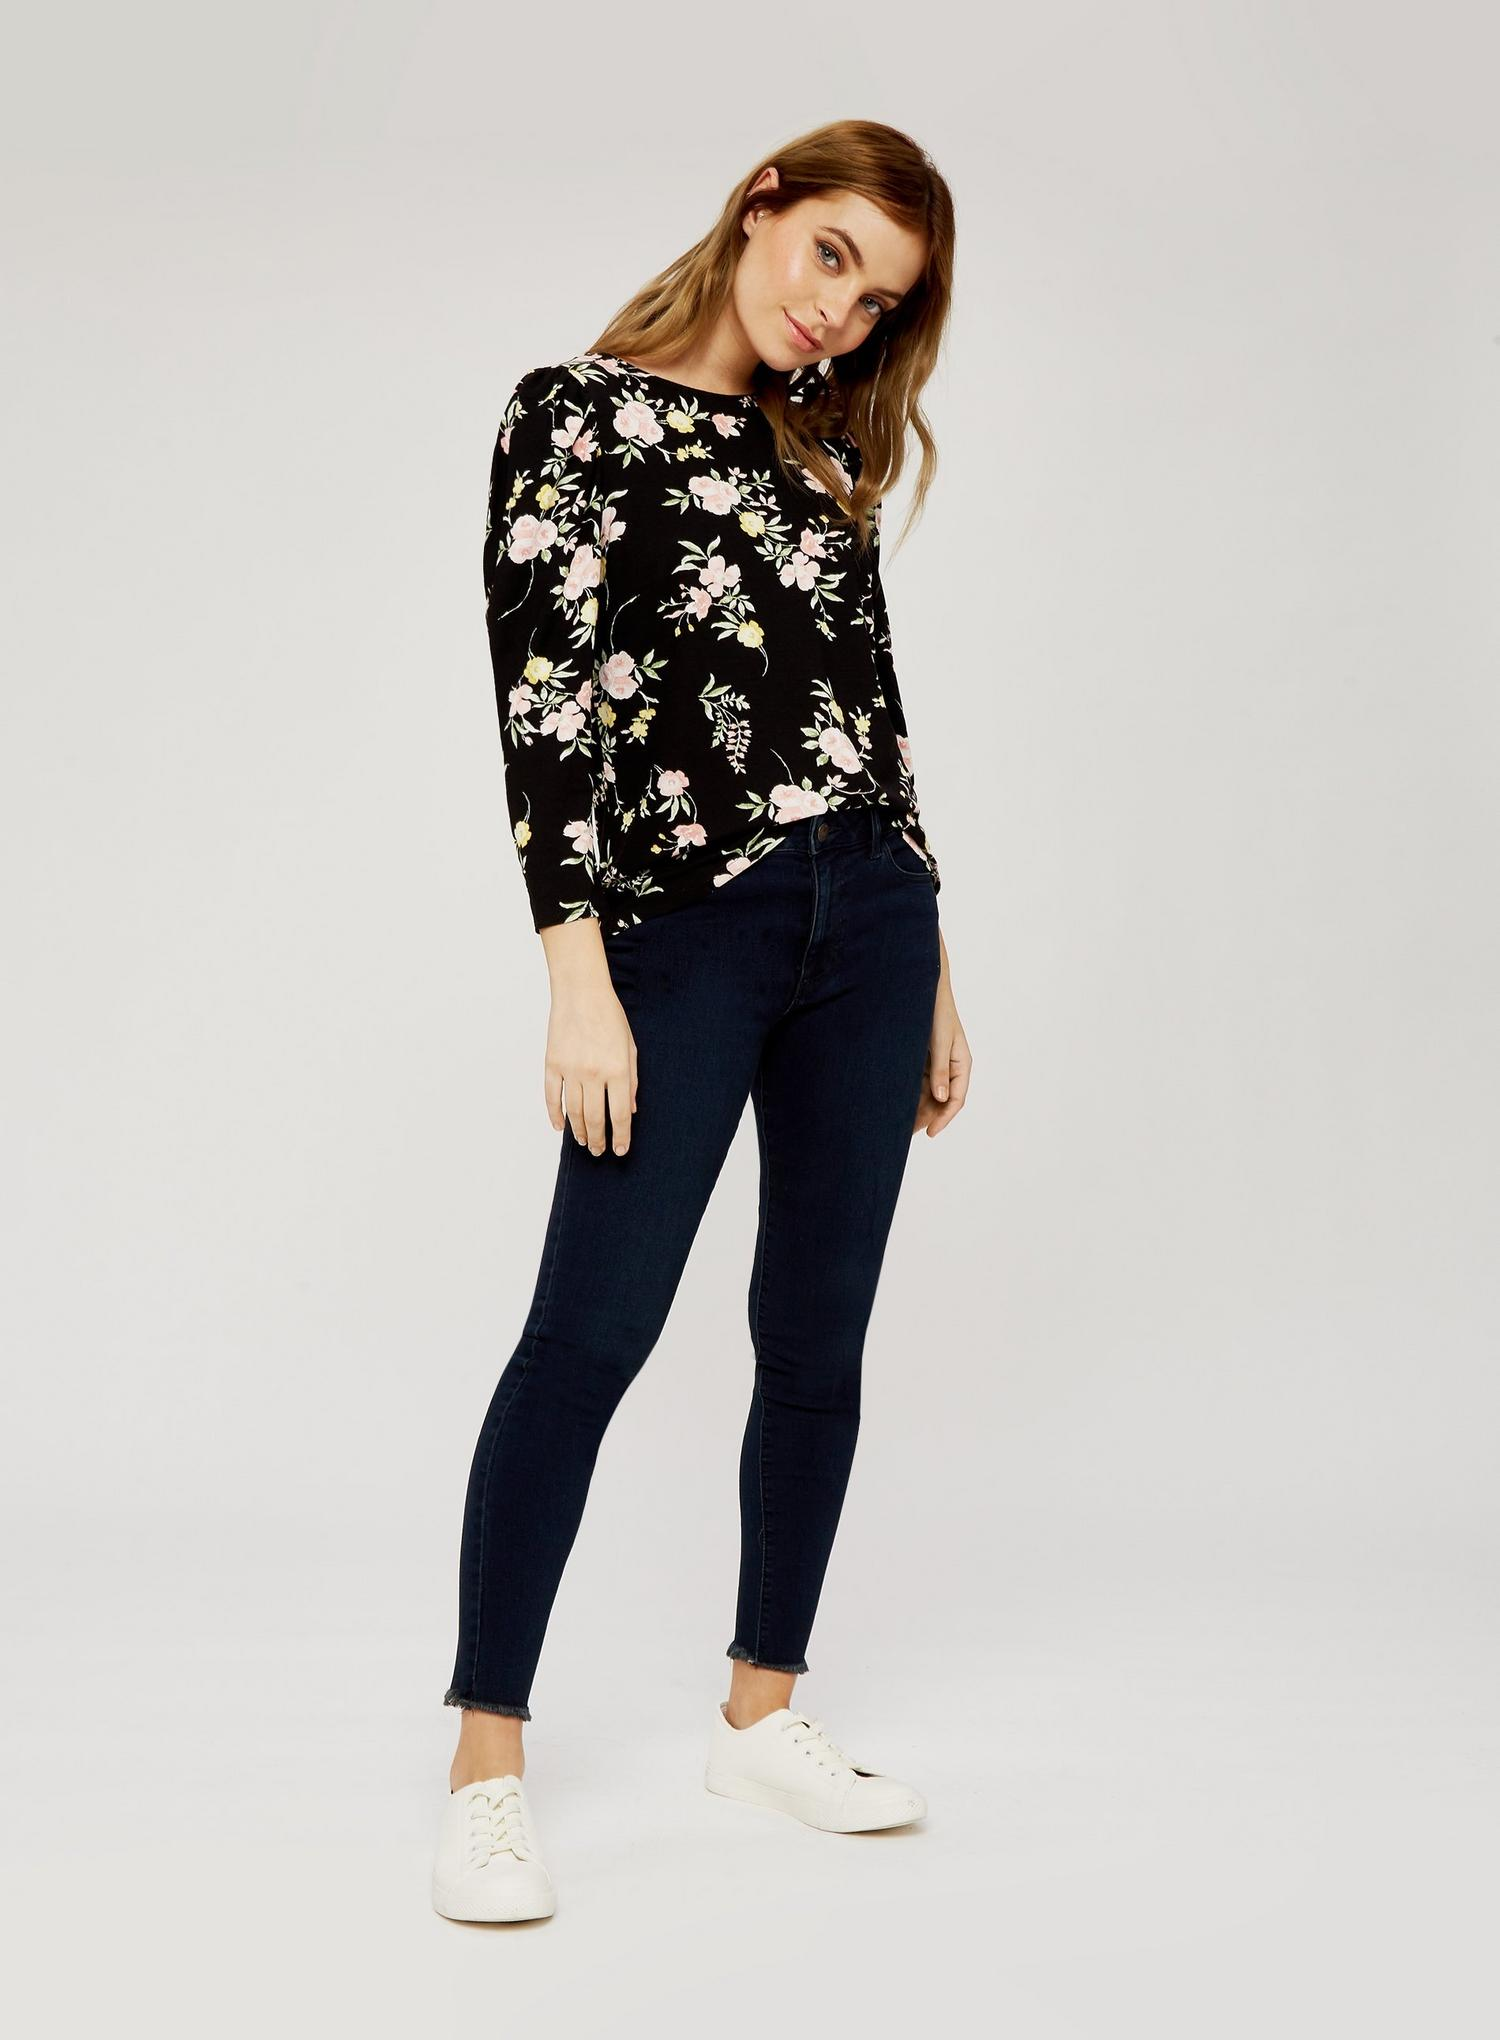 105 Petite Black Floral Print Top image number 4